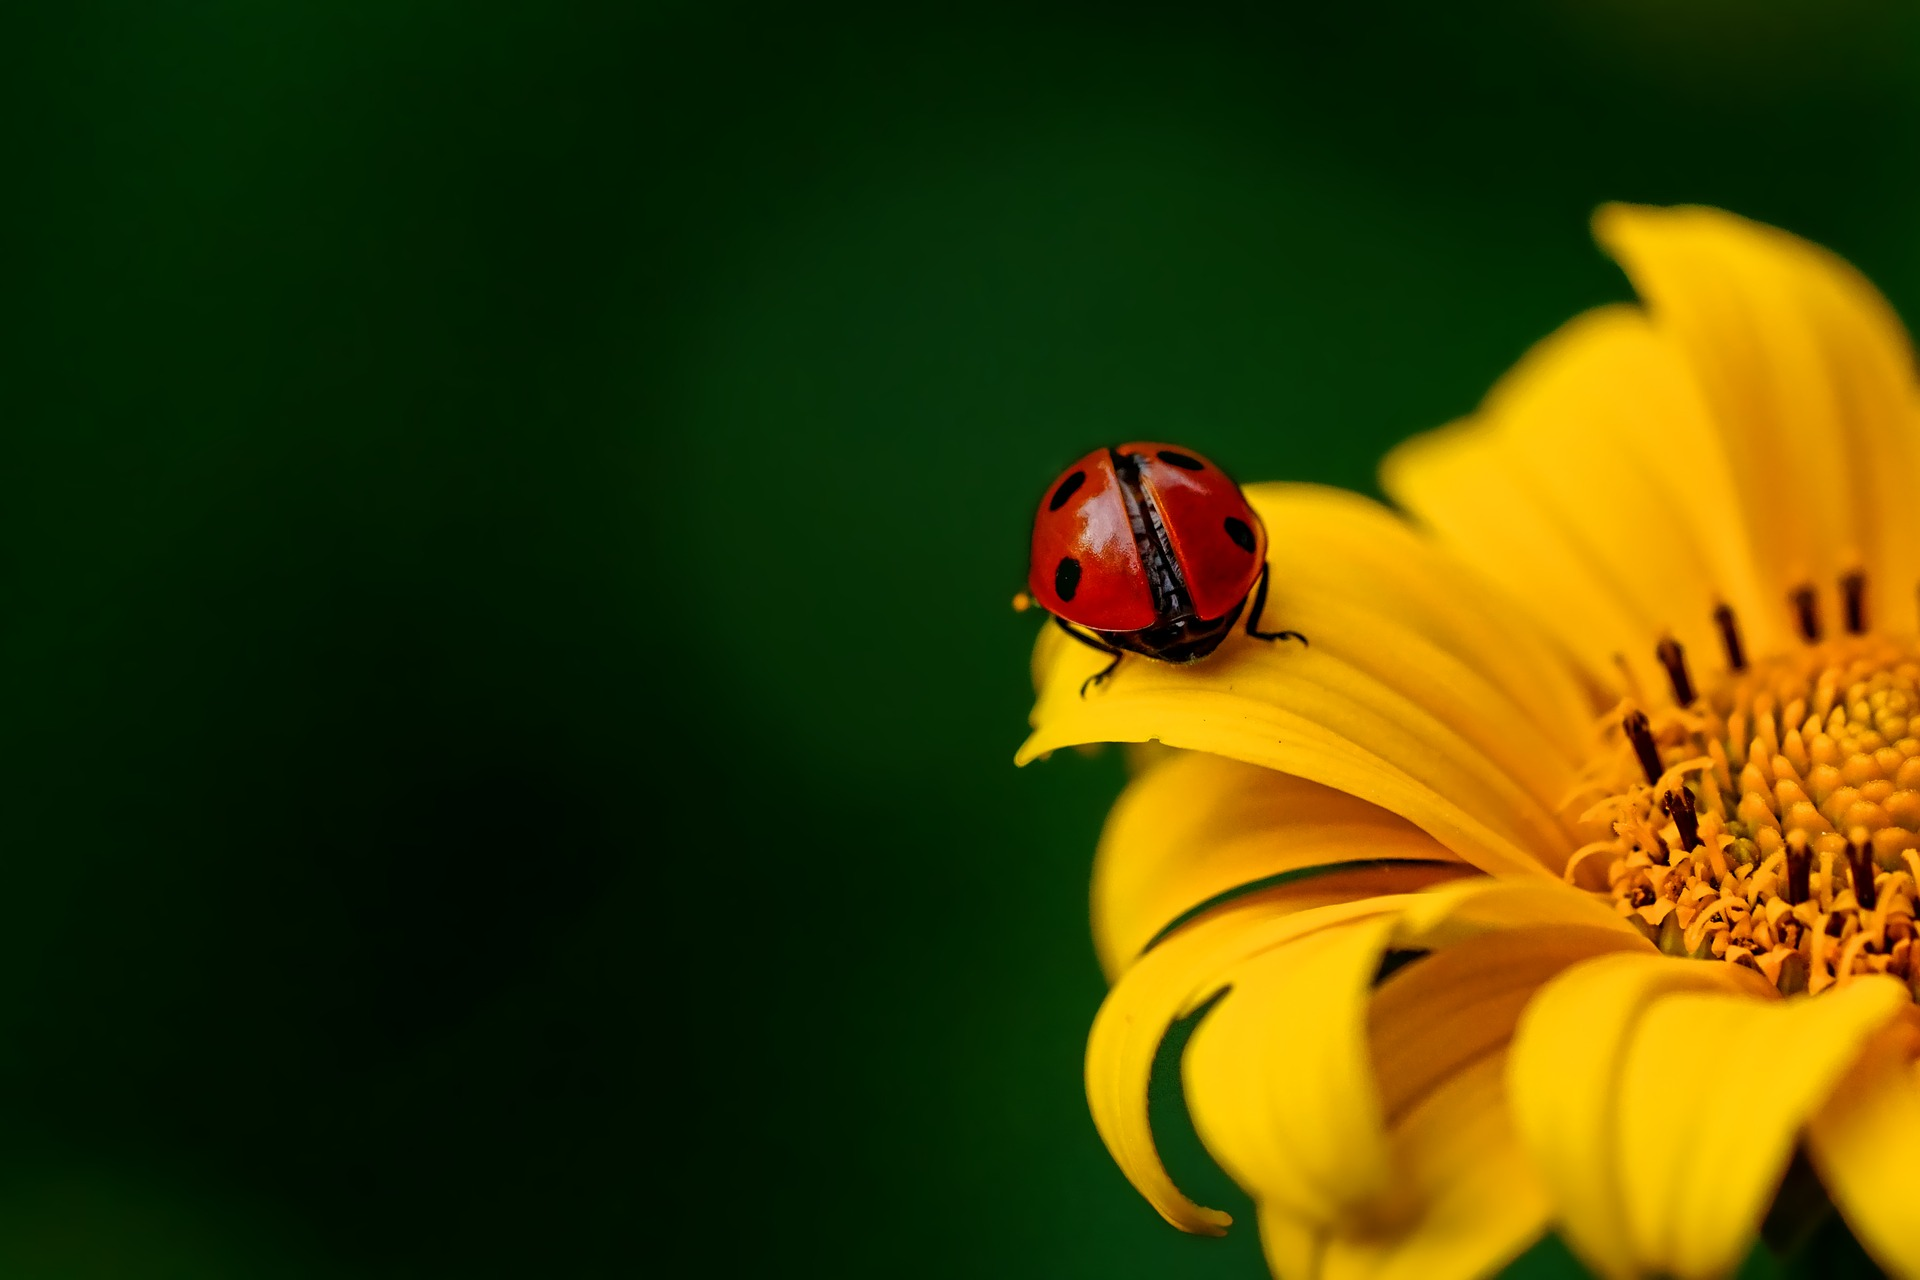 Image of ladybug on a flower